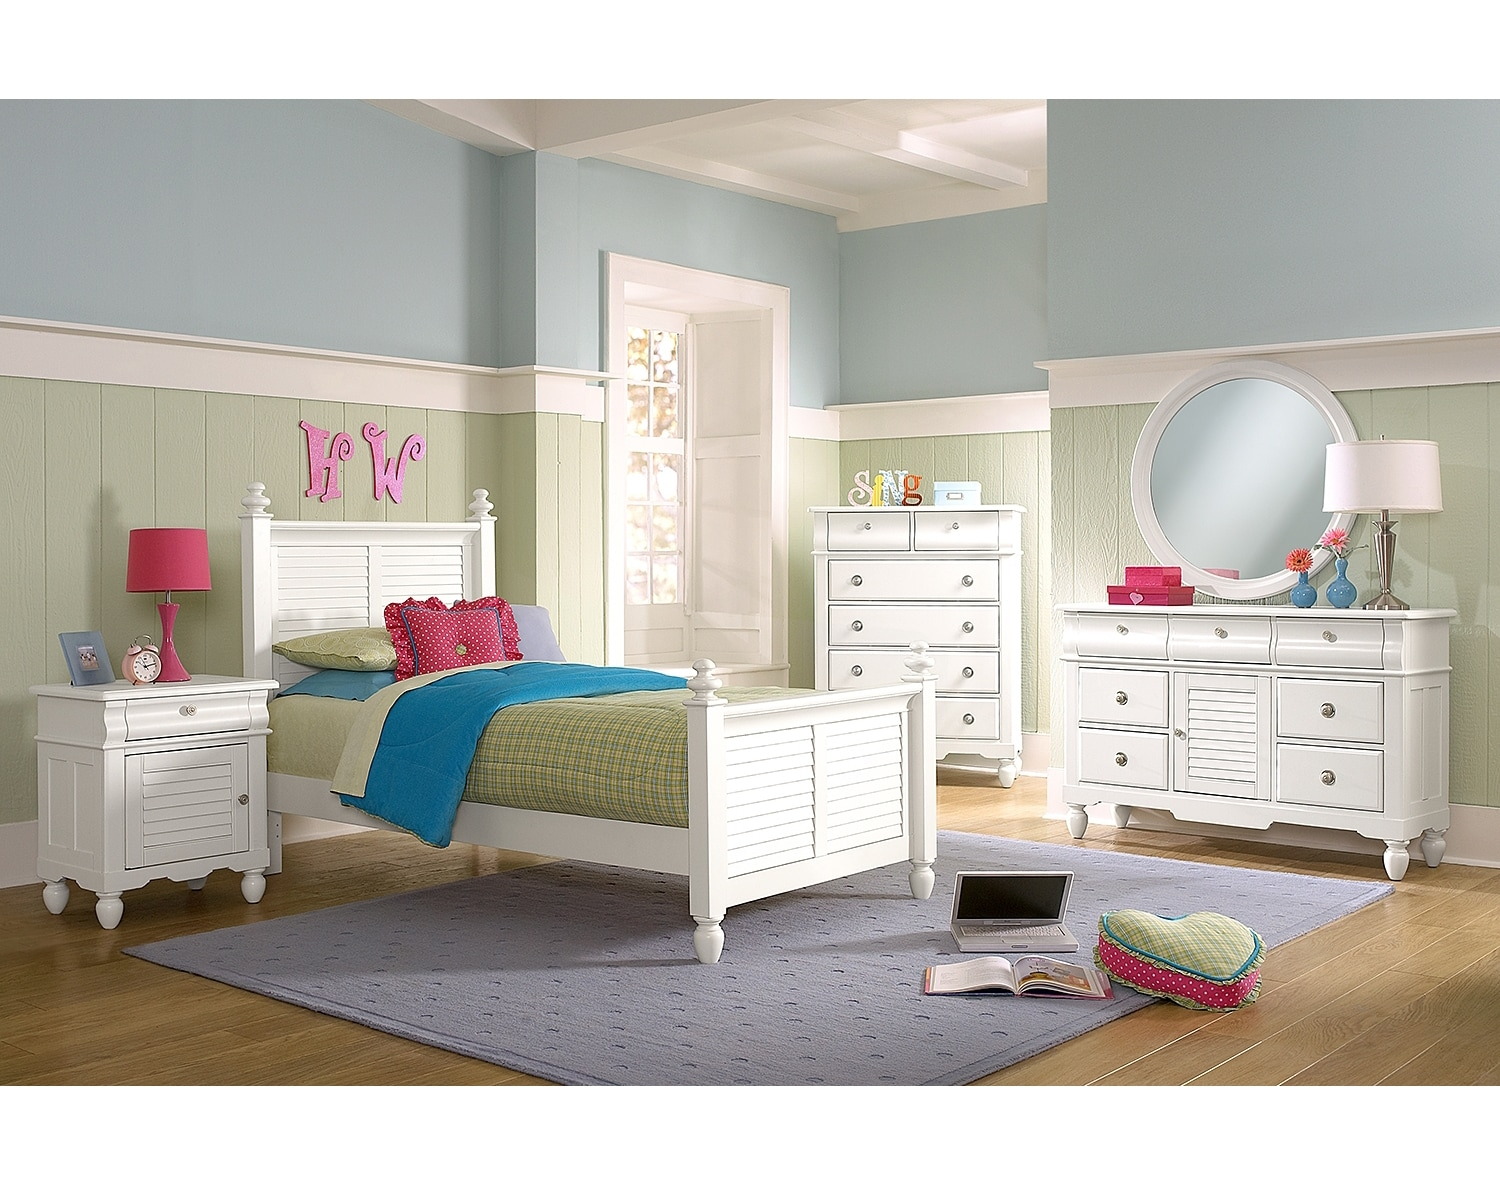 Shop Kids Bedroom Furniture